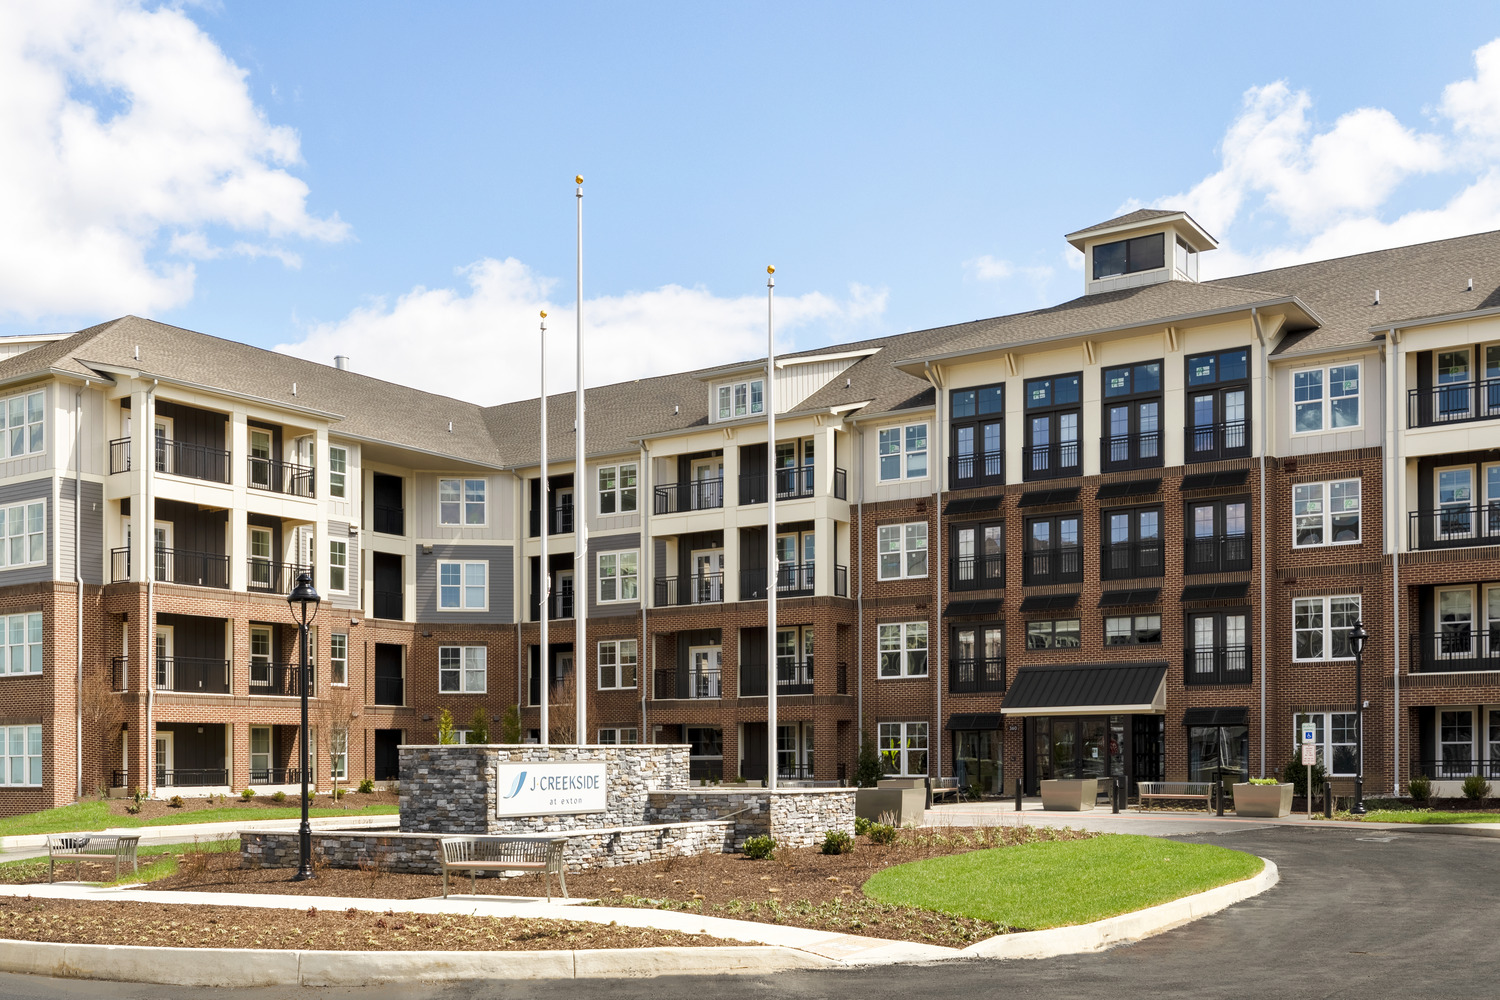 CBG builds J Creekside at Exton, a 291-Unit Luxury Community Across Four Buildings in Exton, PA